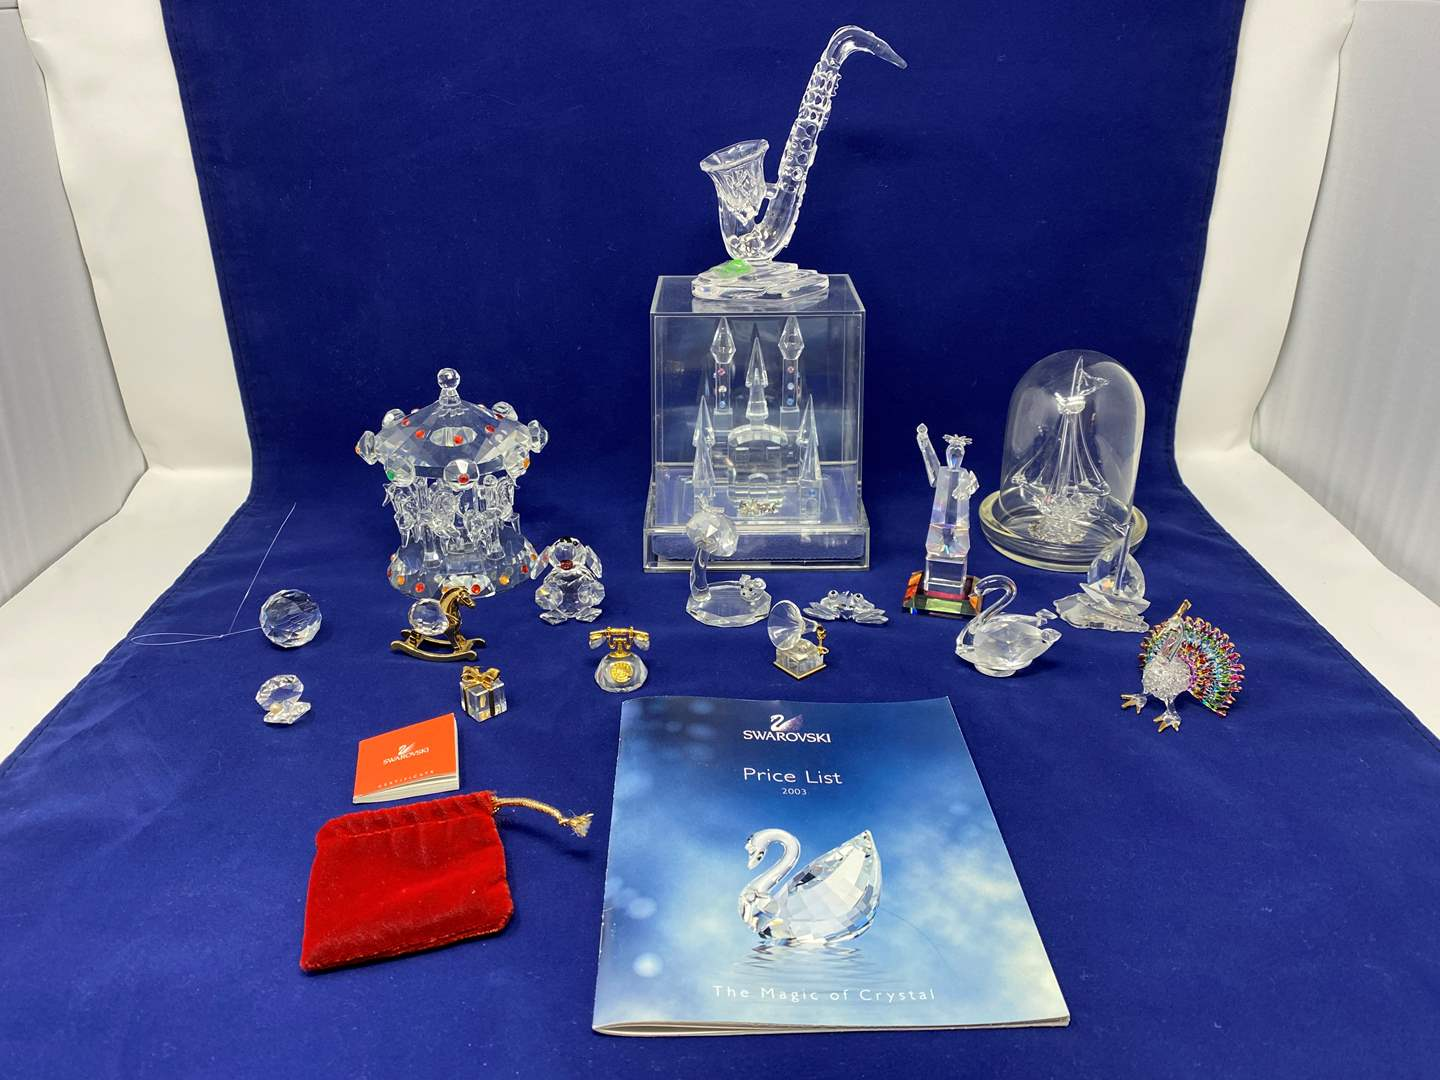 Lot # 34 - Swarovski Crystal Items, Shannon Crystal Carousel, Cinderella Crystal Castle & Other Misc. Glass & Crystal Items  (main image)